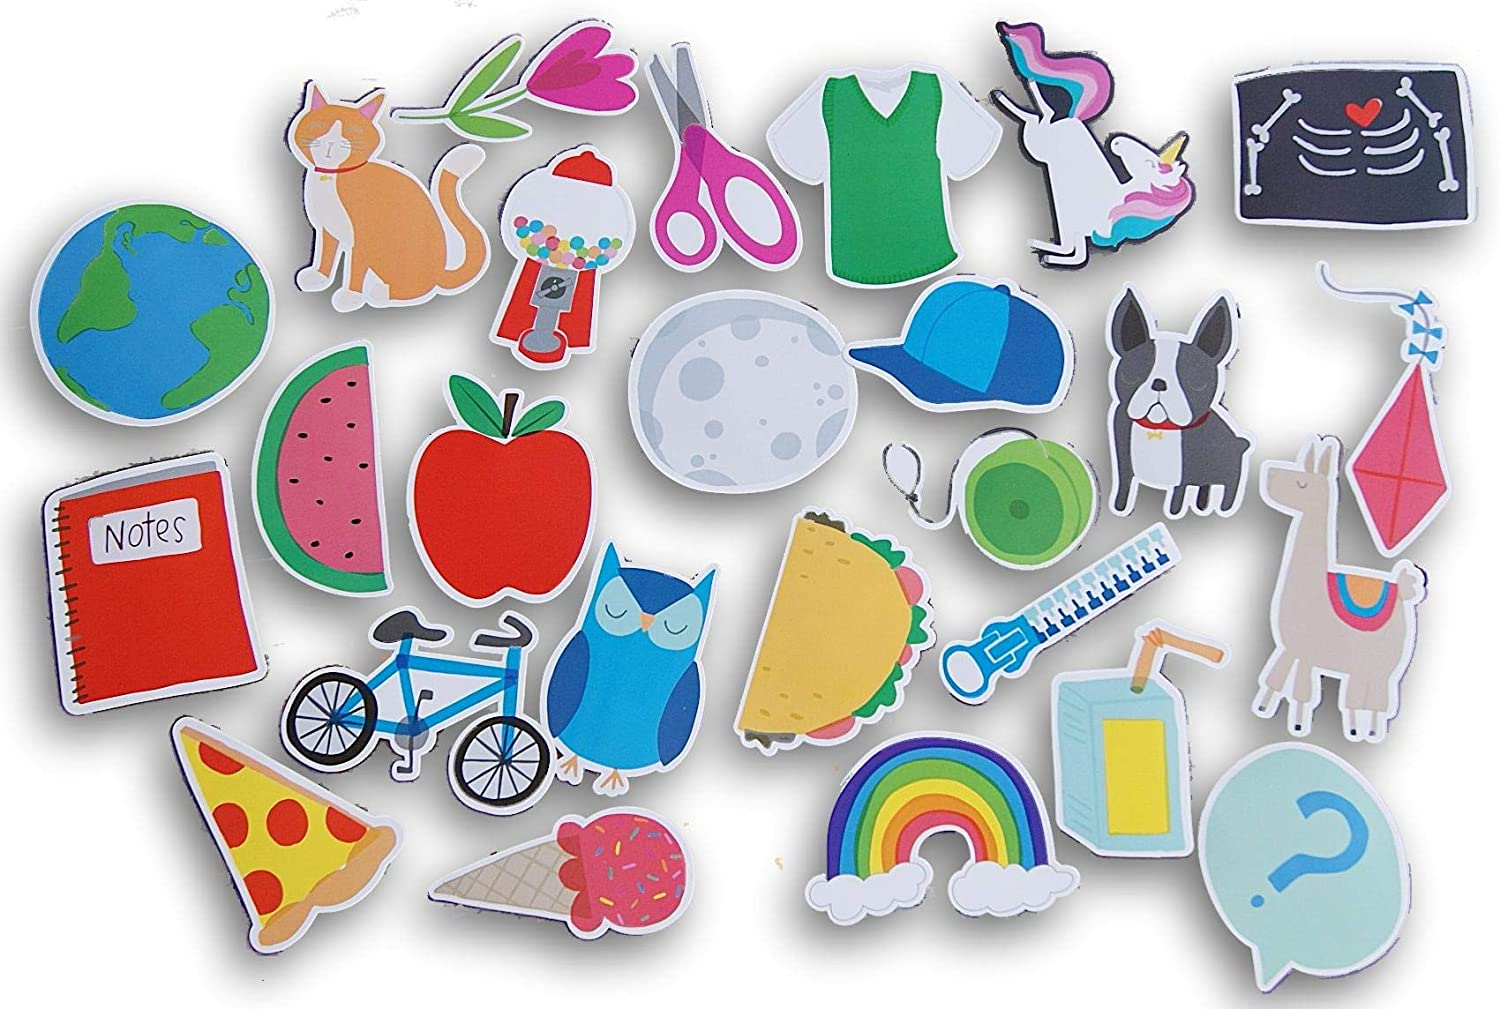 Classroom Bulletin Board Accent Paper Cut-Outs - Assorted Animals, Food Shapes, School Supply Shapes - 26 Count